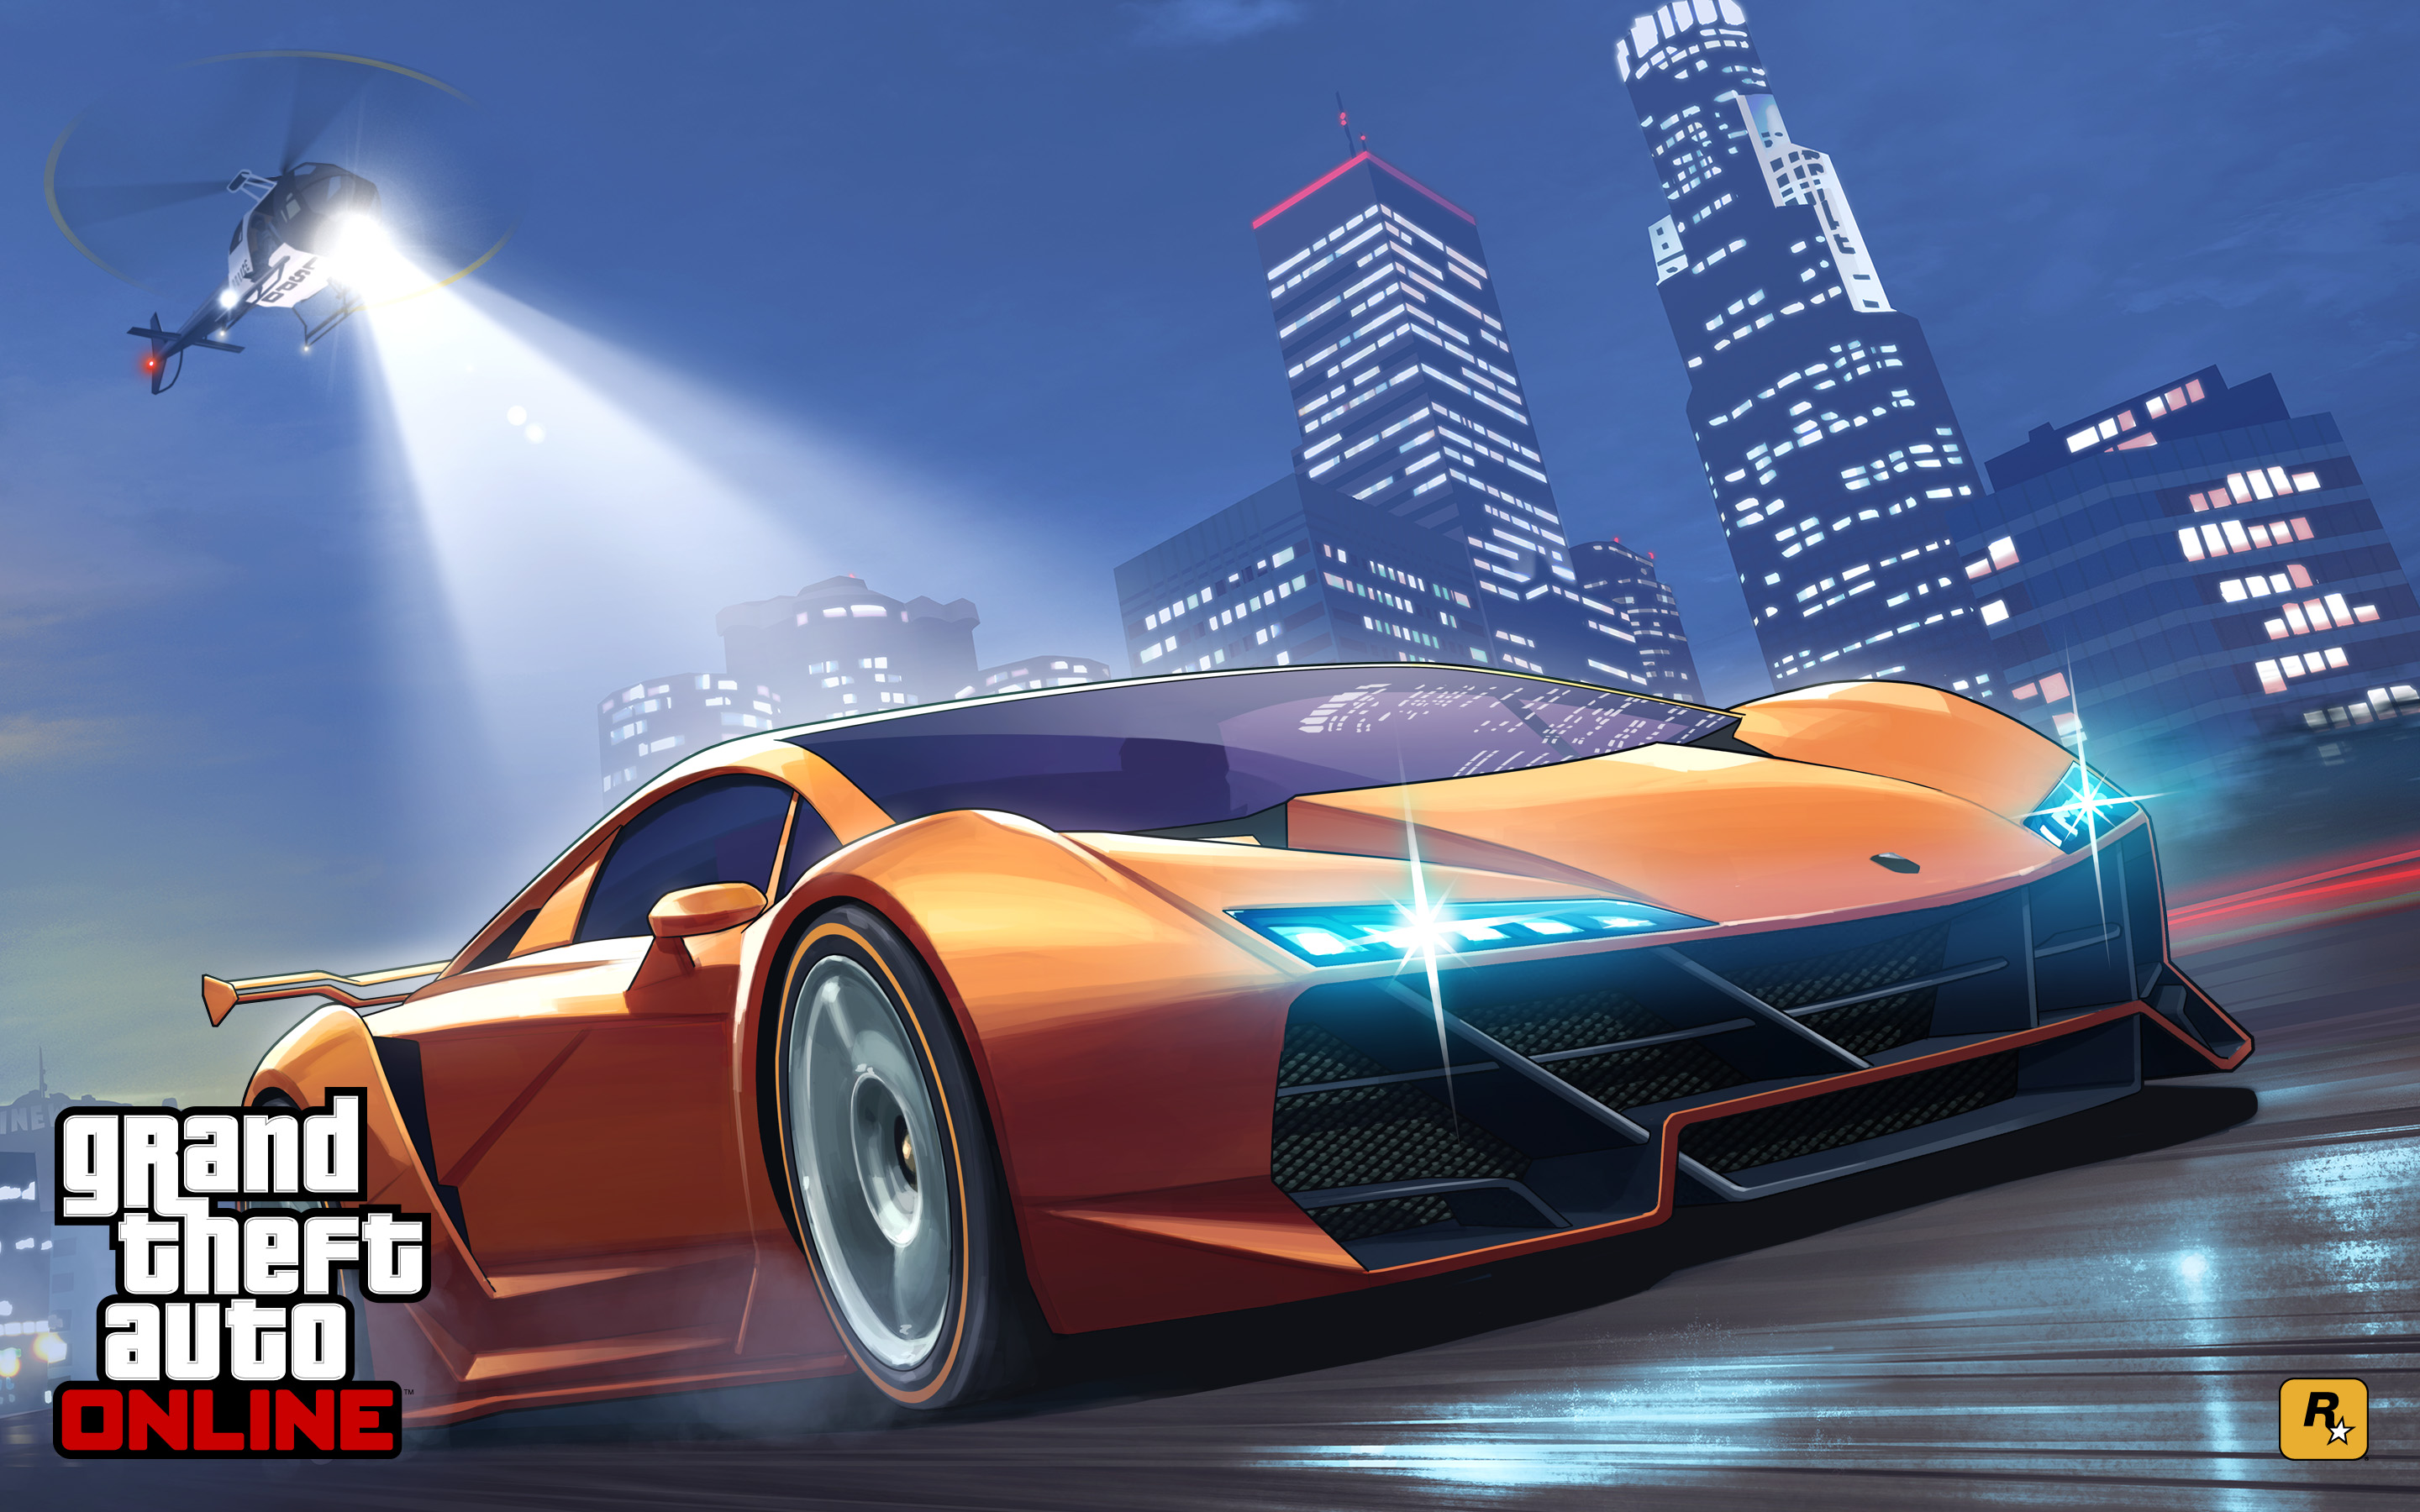 Grand Theft Auto Online 2015 Game Exclusive HD Wallpapers 7219 2880x1800